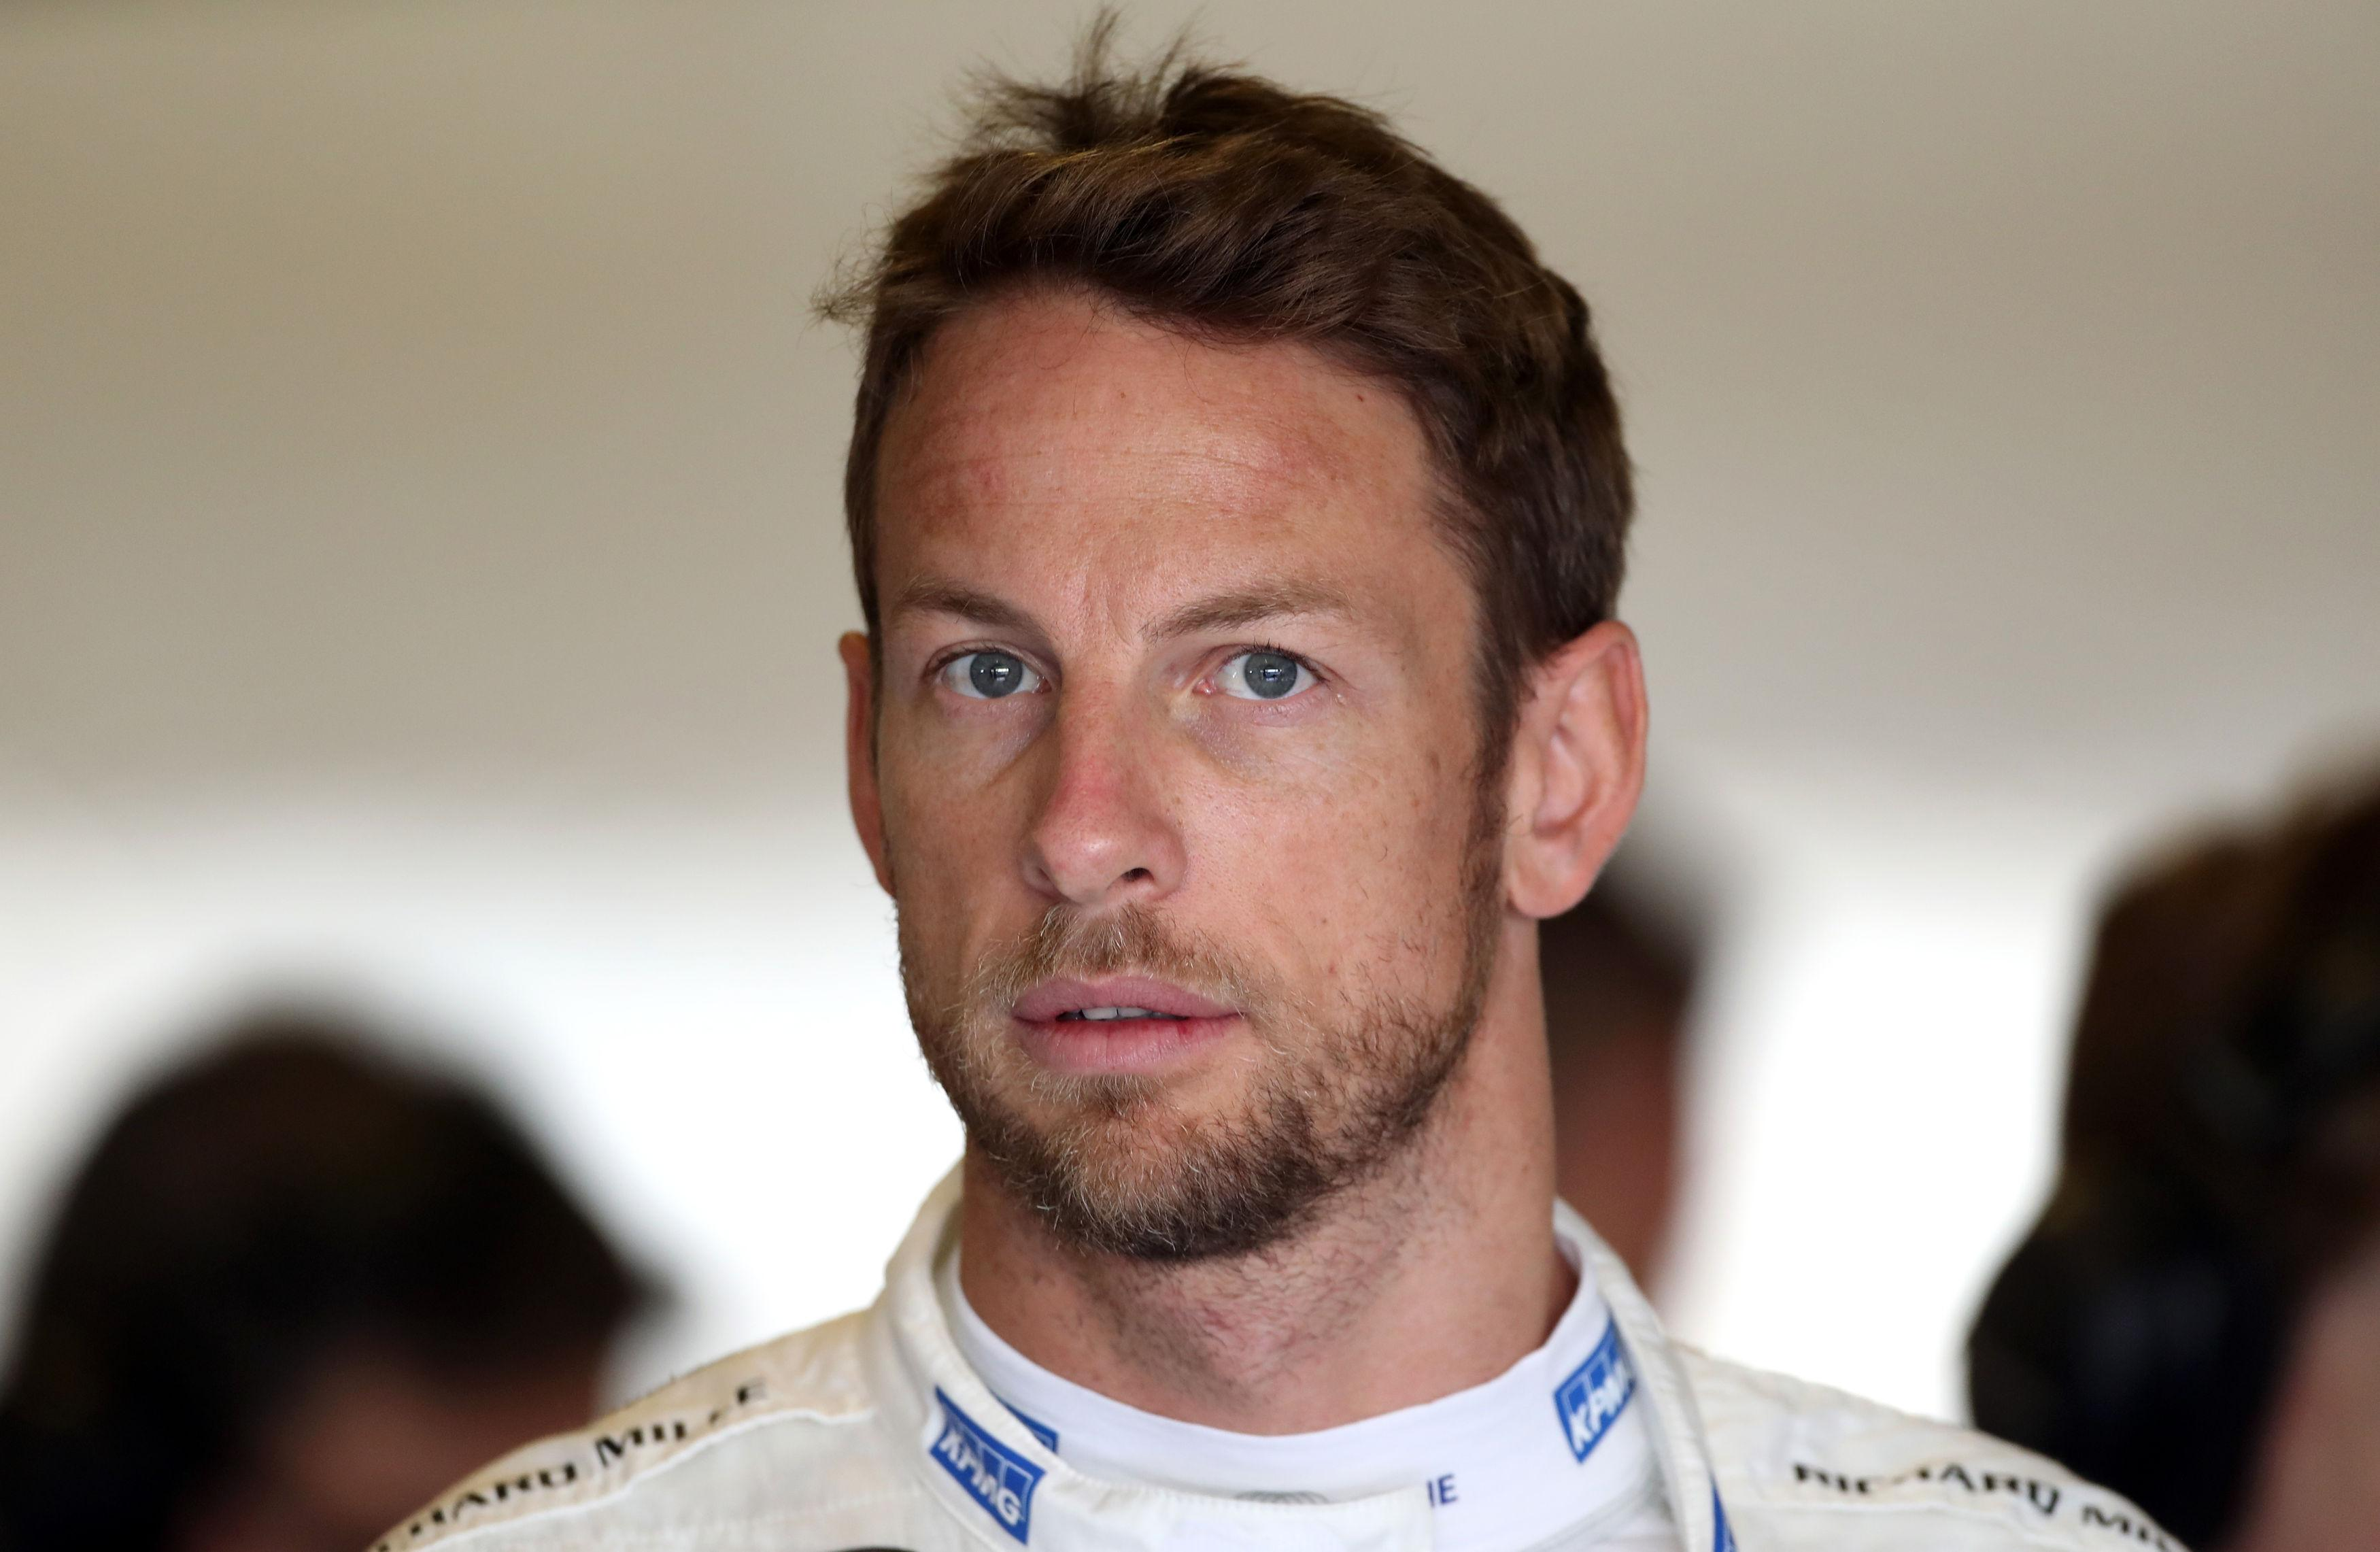 Jenson Button has offered his support to Billy Monger